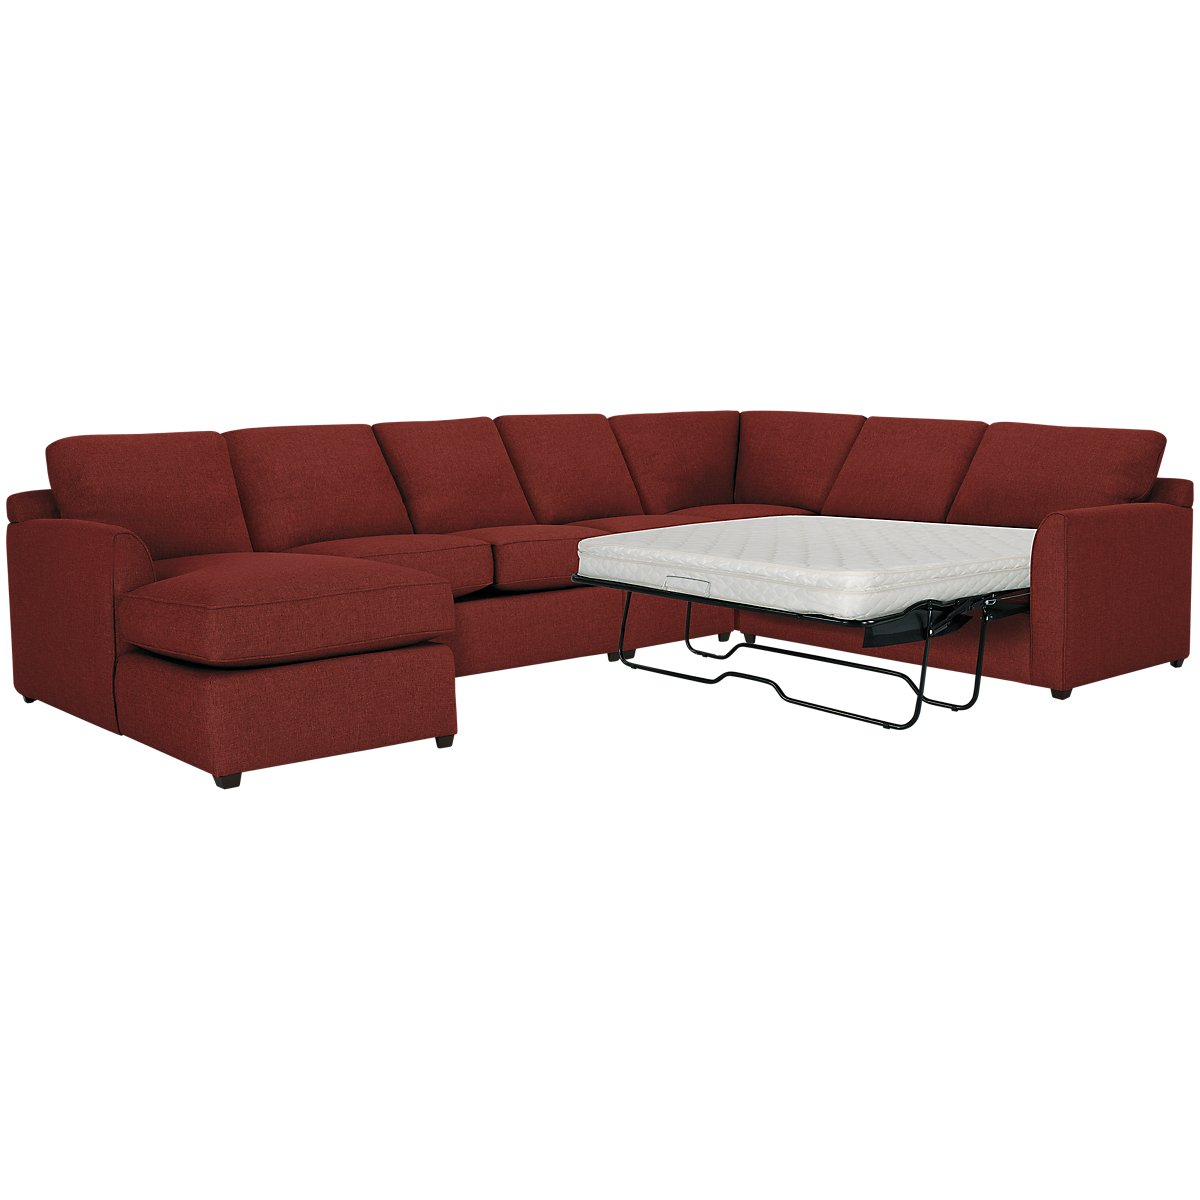 City furniture asheville red fabric left chaise for Andrea 2 piece sleeper chaise